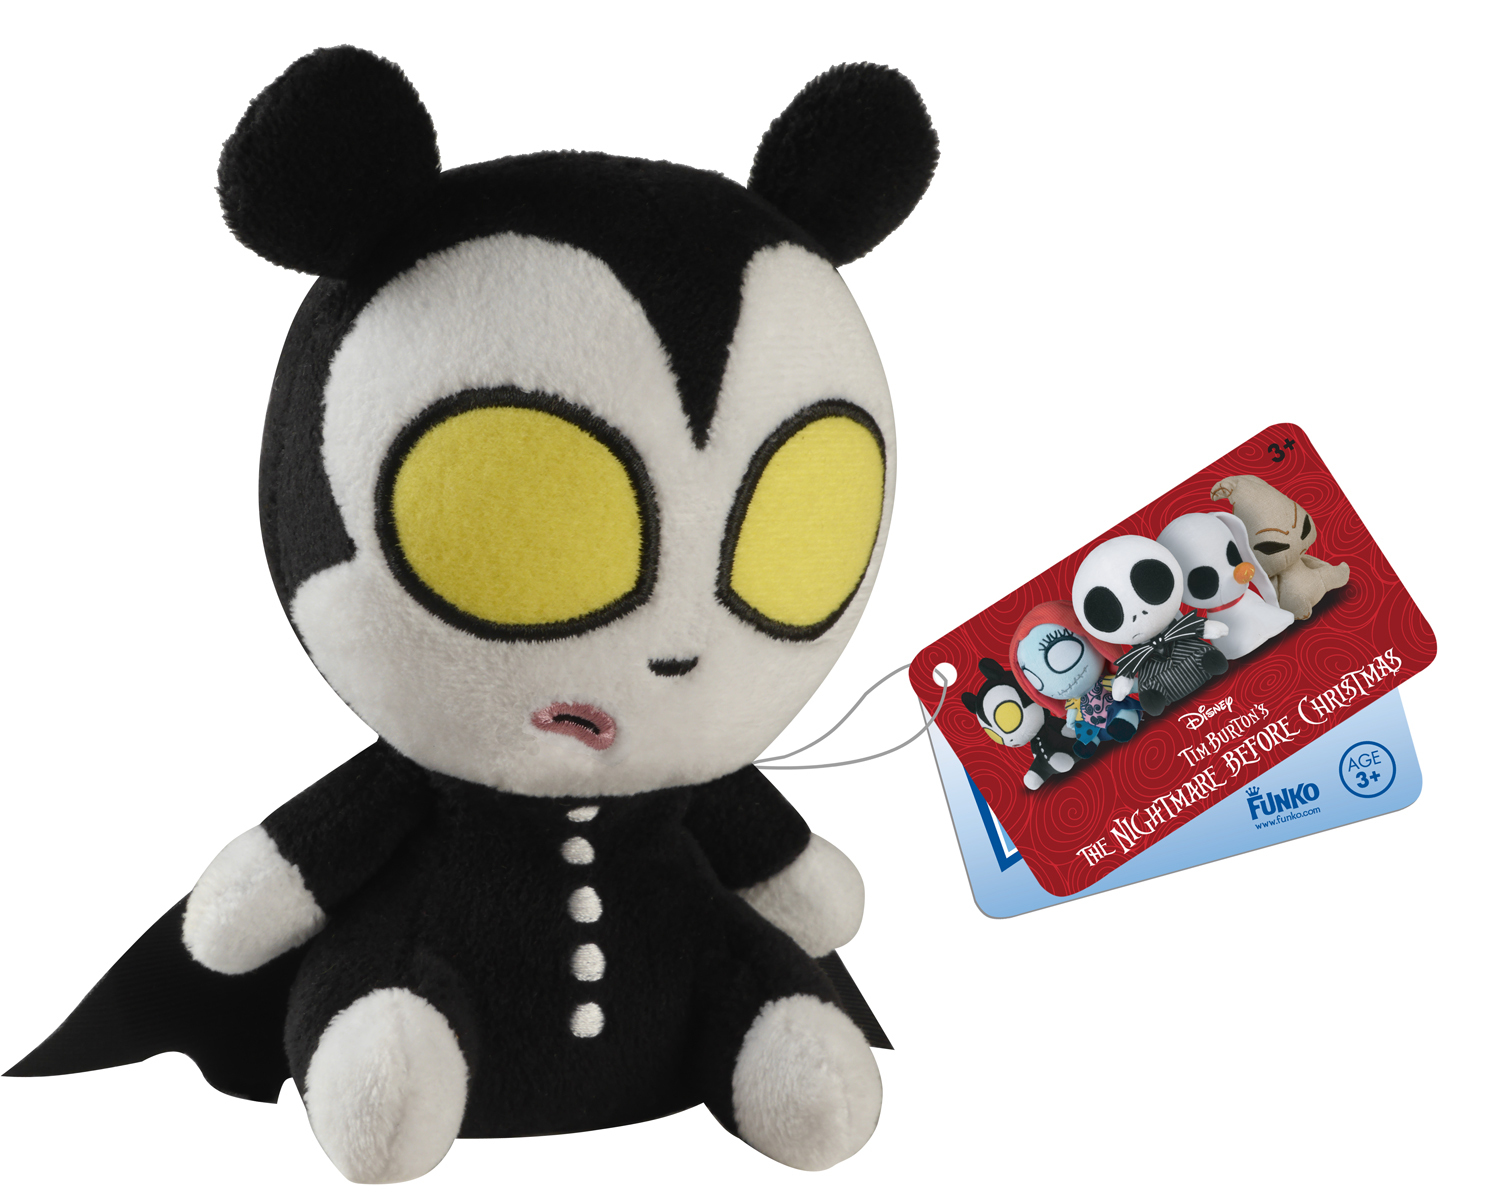 Nightmare Before Christmas Mopeez - Vampire Teddy Plush | Toy | at ...